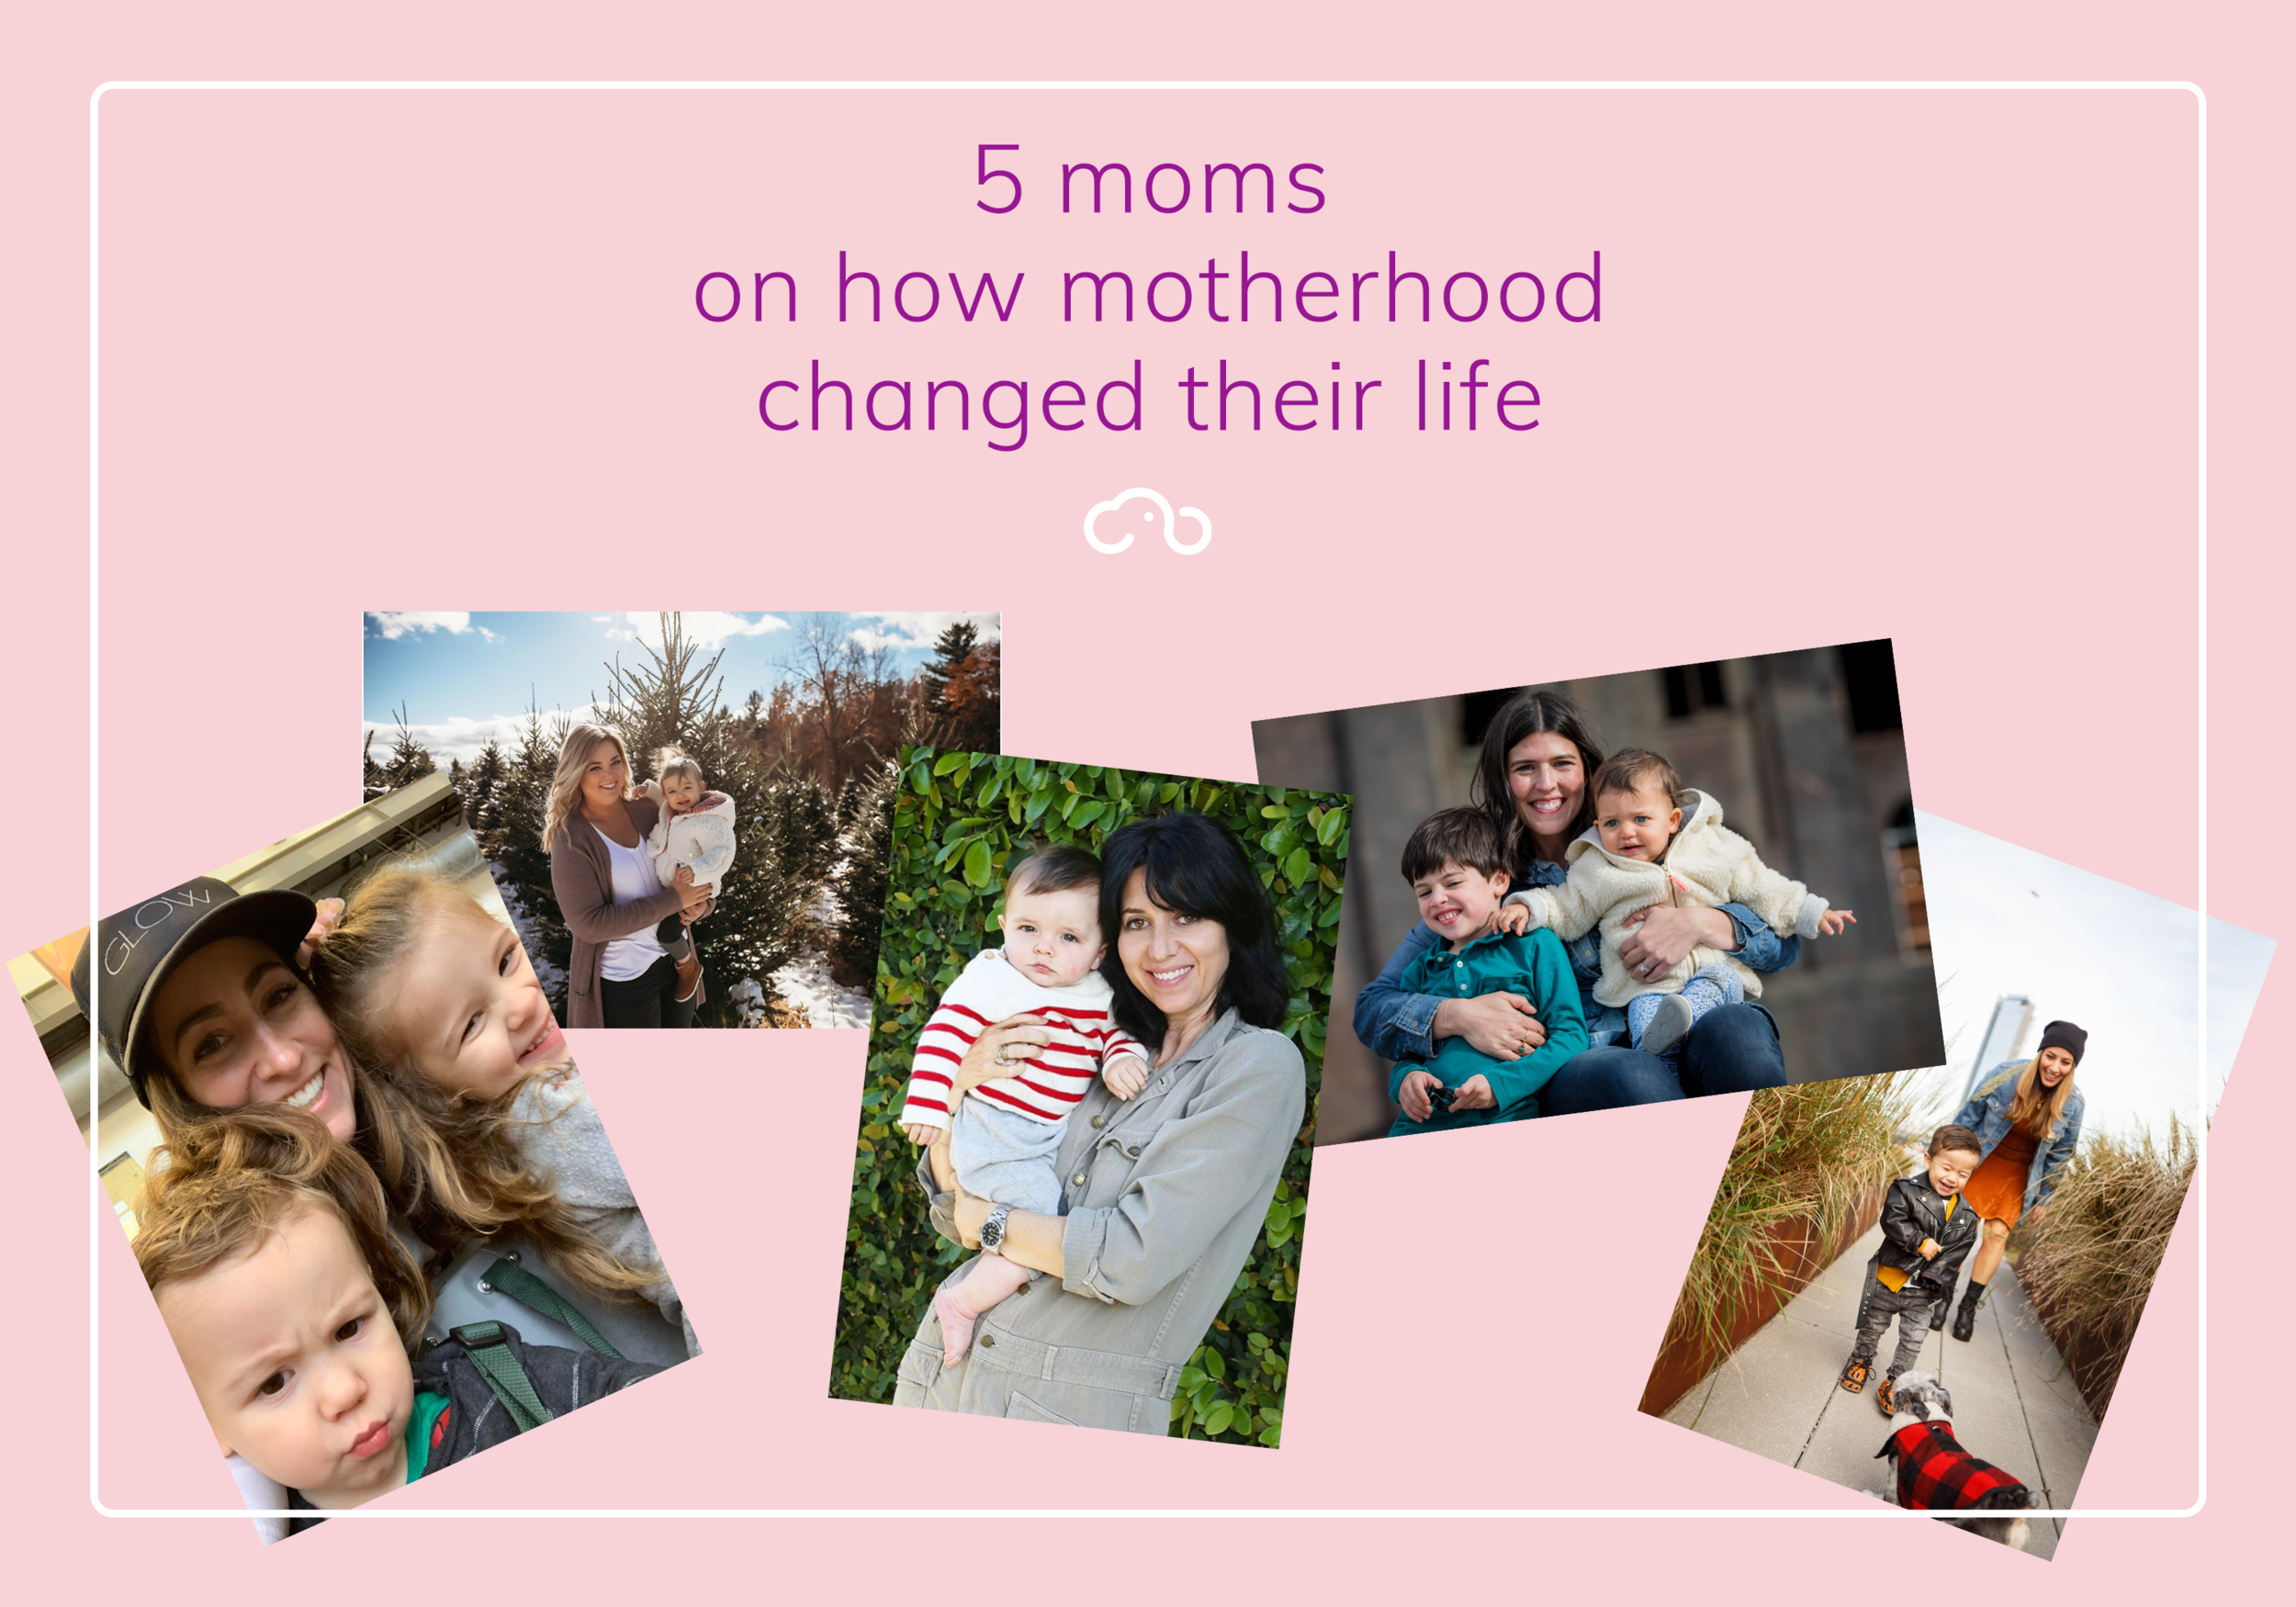 Five pictures of moms with their babies on how motherhood changed them.